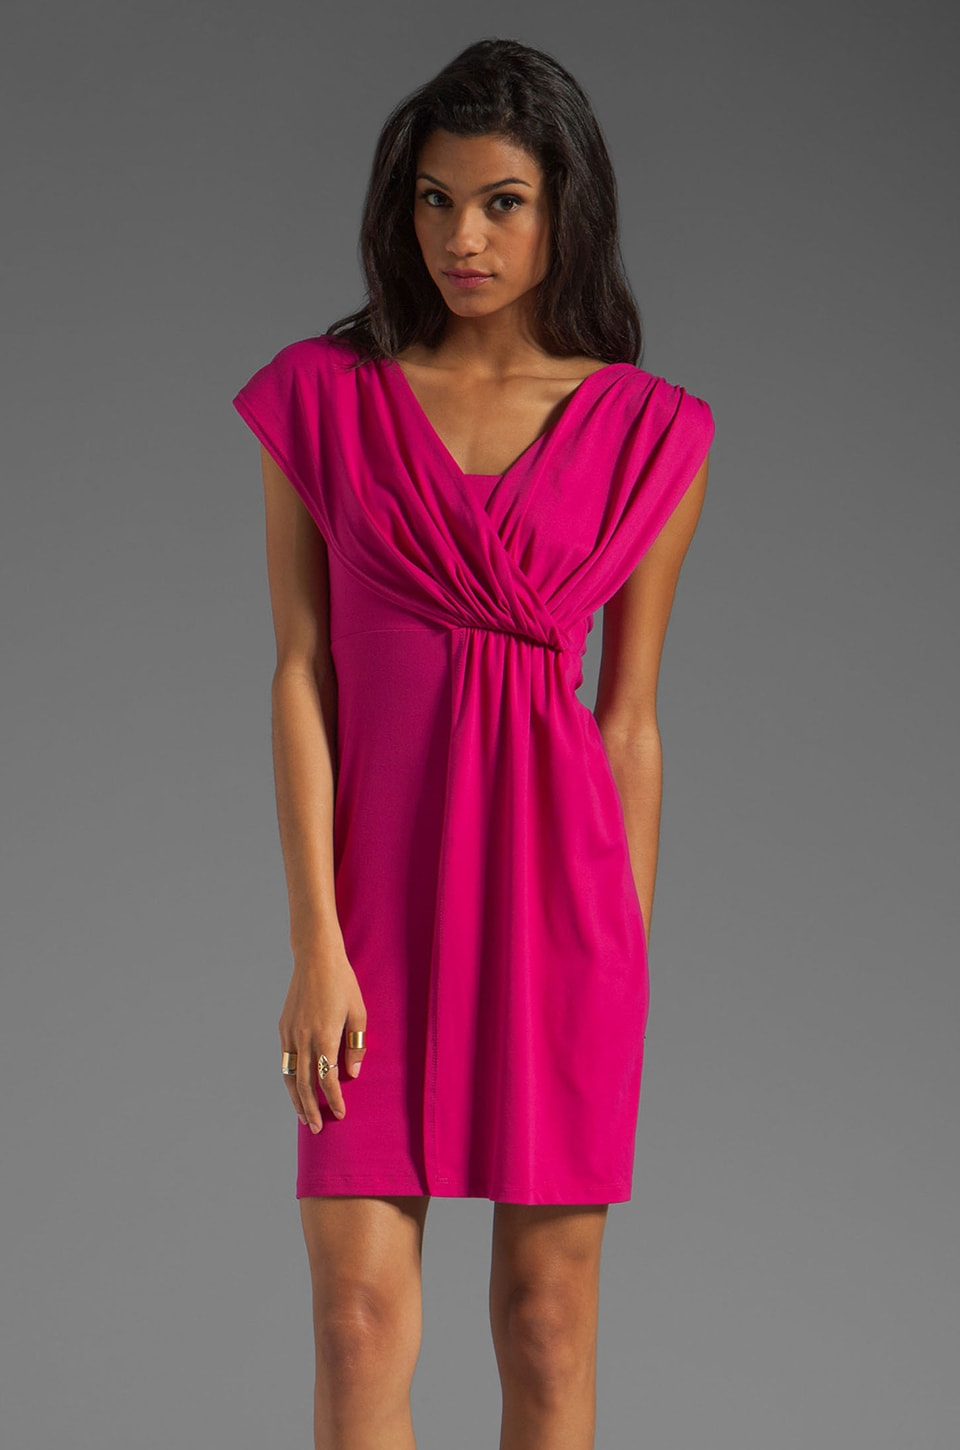 Susana Monaco Light Supplex Asymmetric Drape Dress in Fuchsia